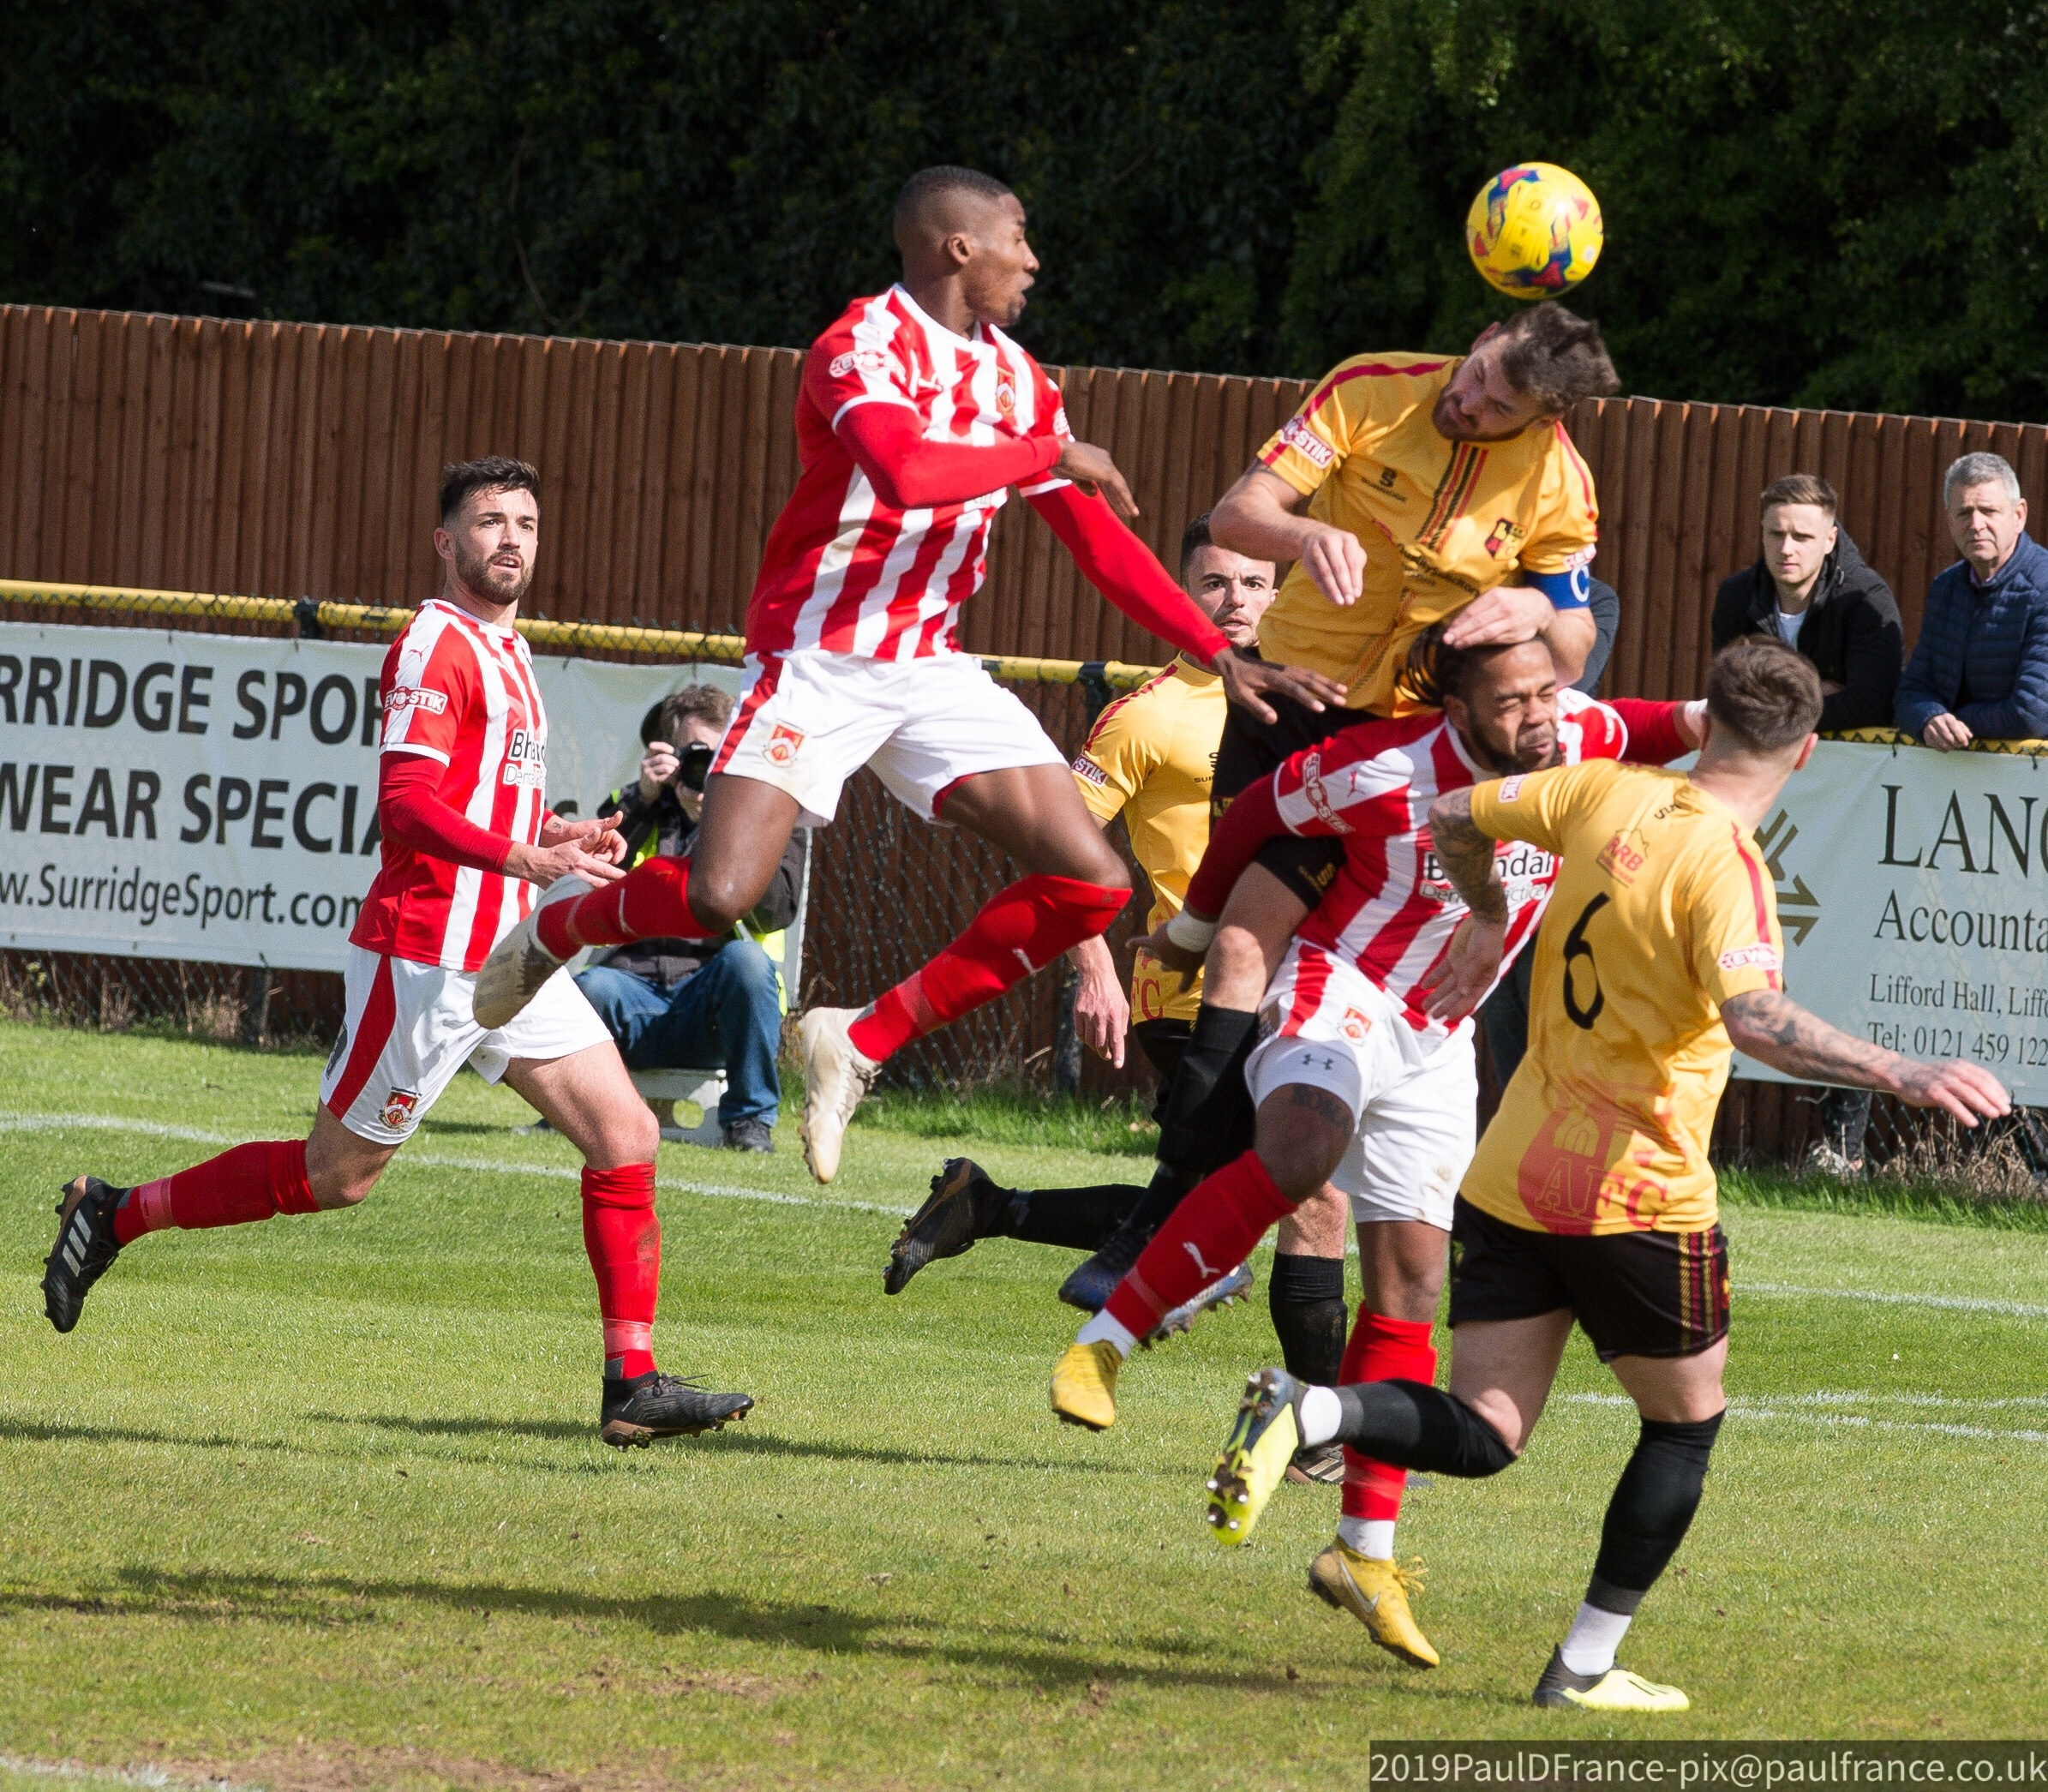 Action as Alvechurch and Stour battled in the play-off semi-final. Photo by Paul France.